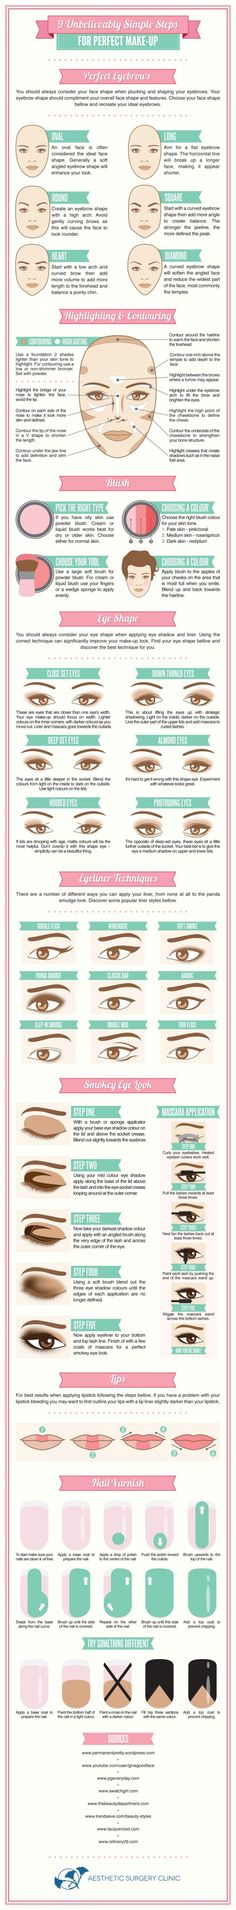 9 Unbelievably Simple Steps For Perfect Make-Up | From Visual.ly diyandcrafts.com